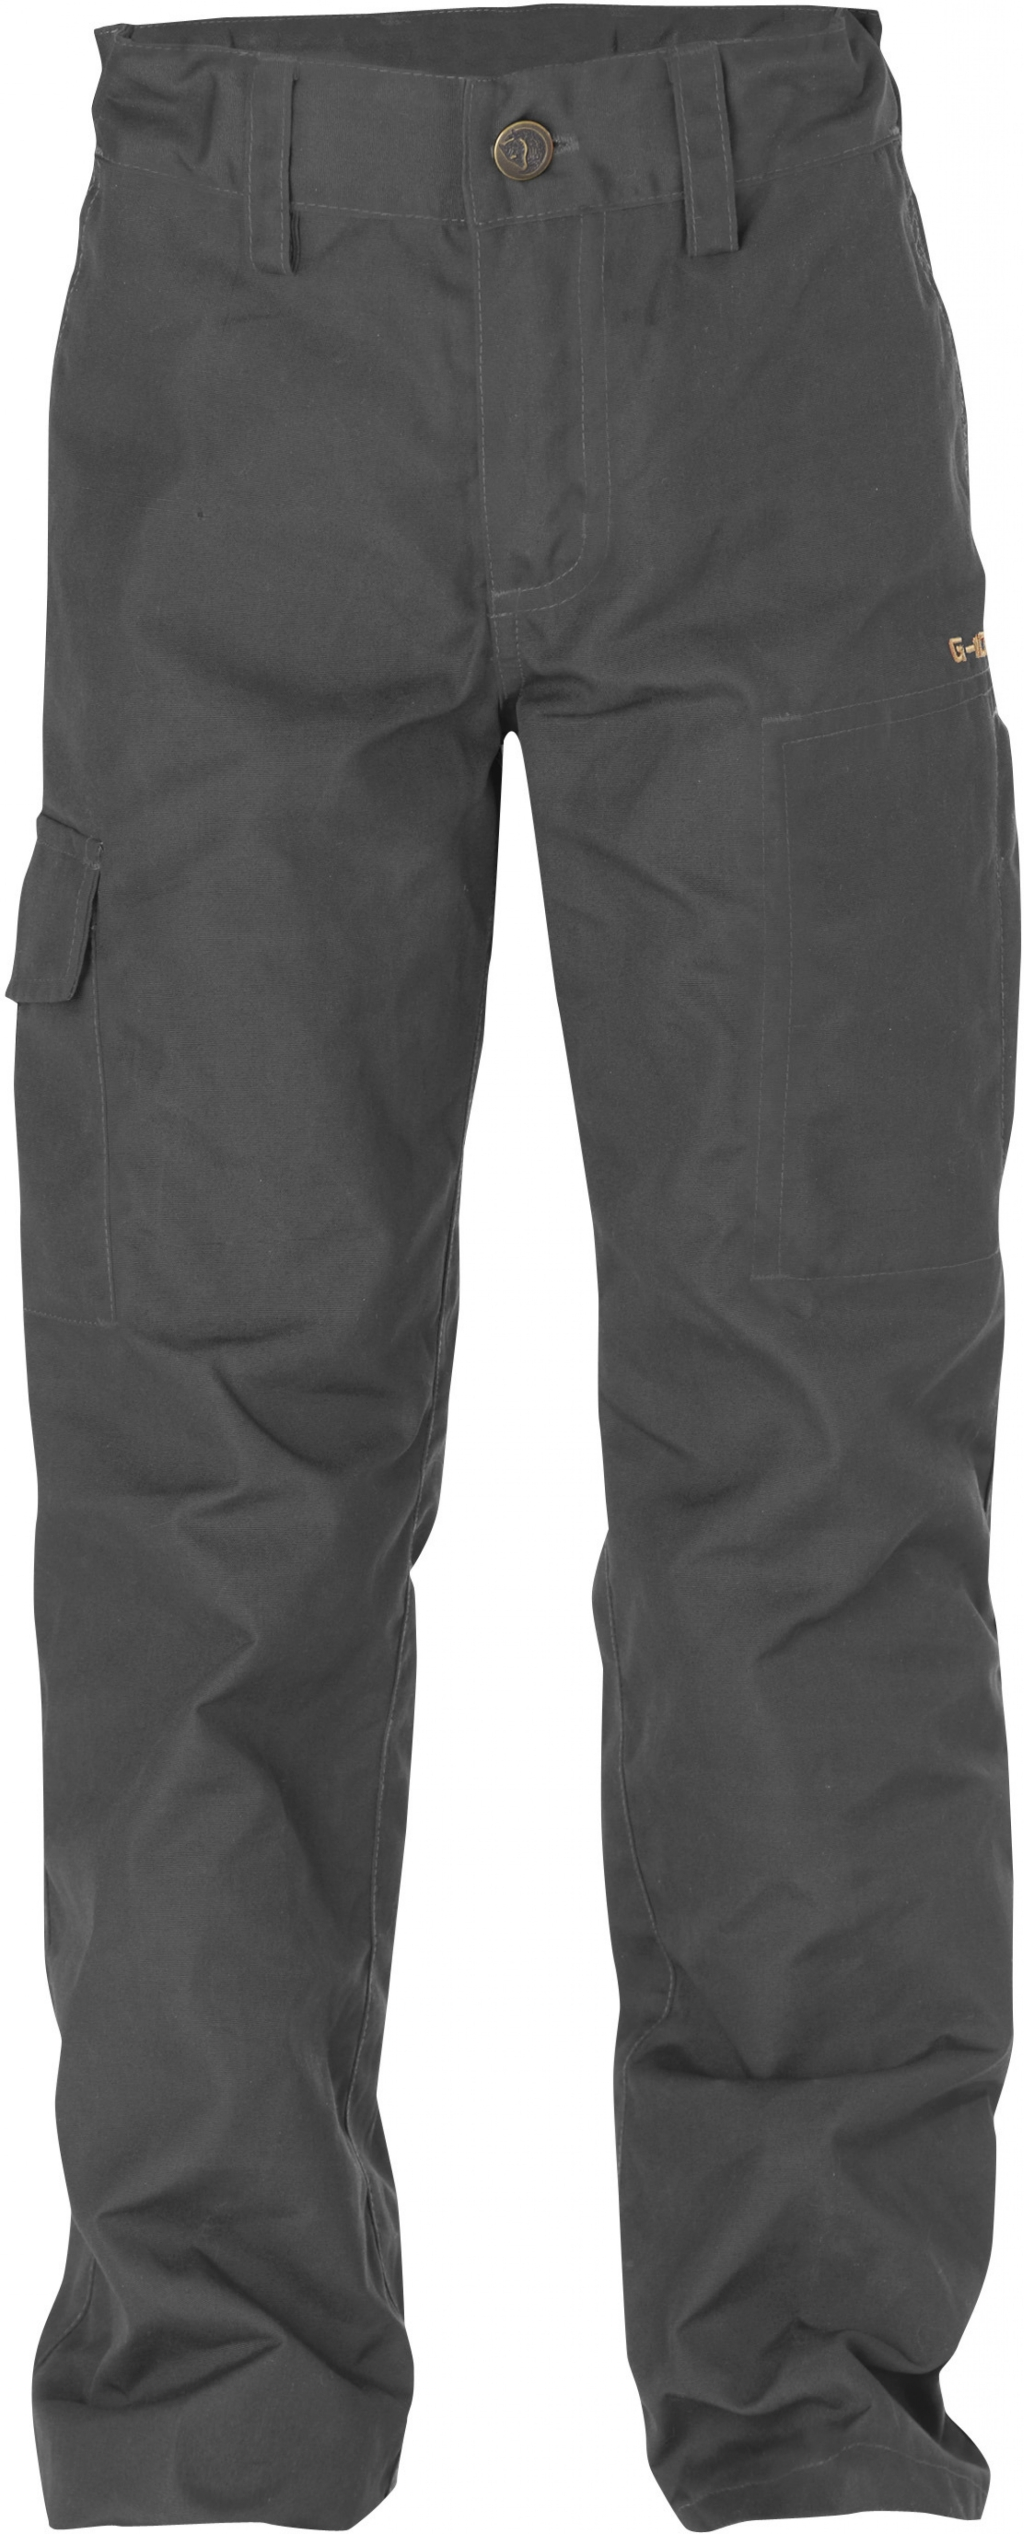 FjallRaven Kids Ovik Trousers Dark Grey-30